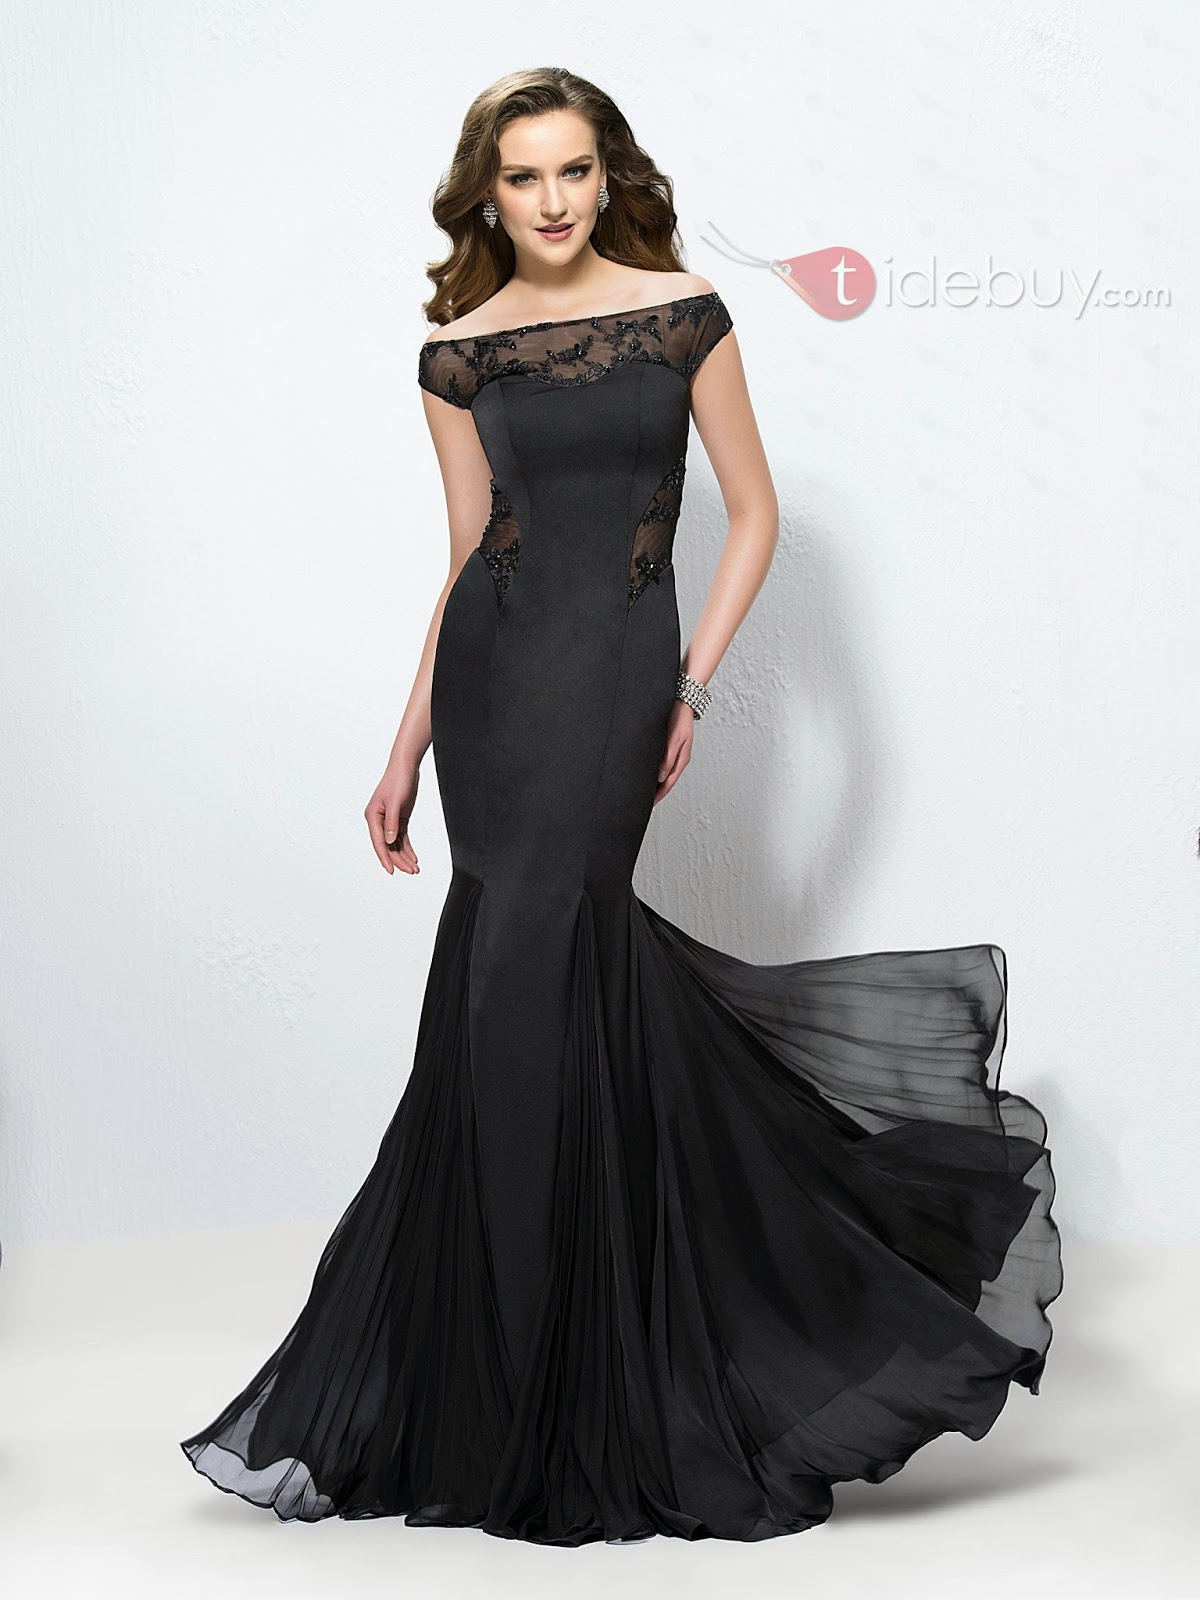 Fashion and Pinkheart I would wear Tide elegant prom